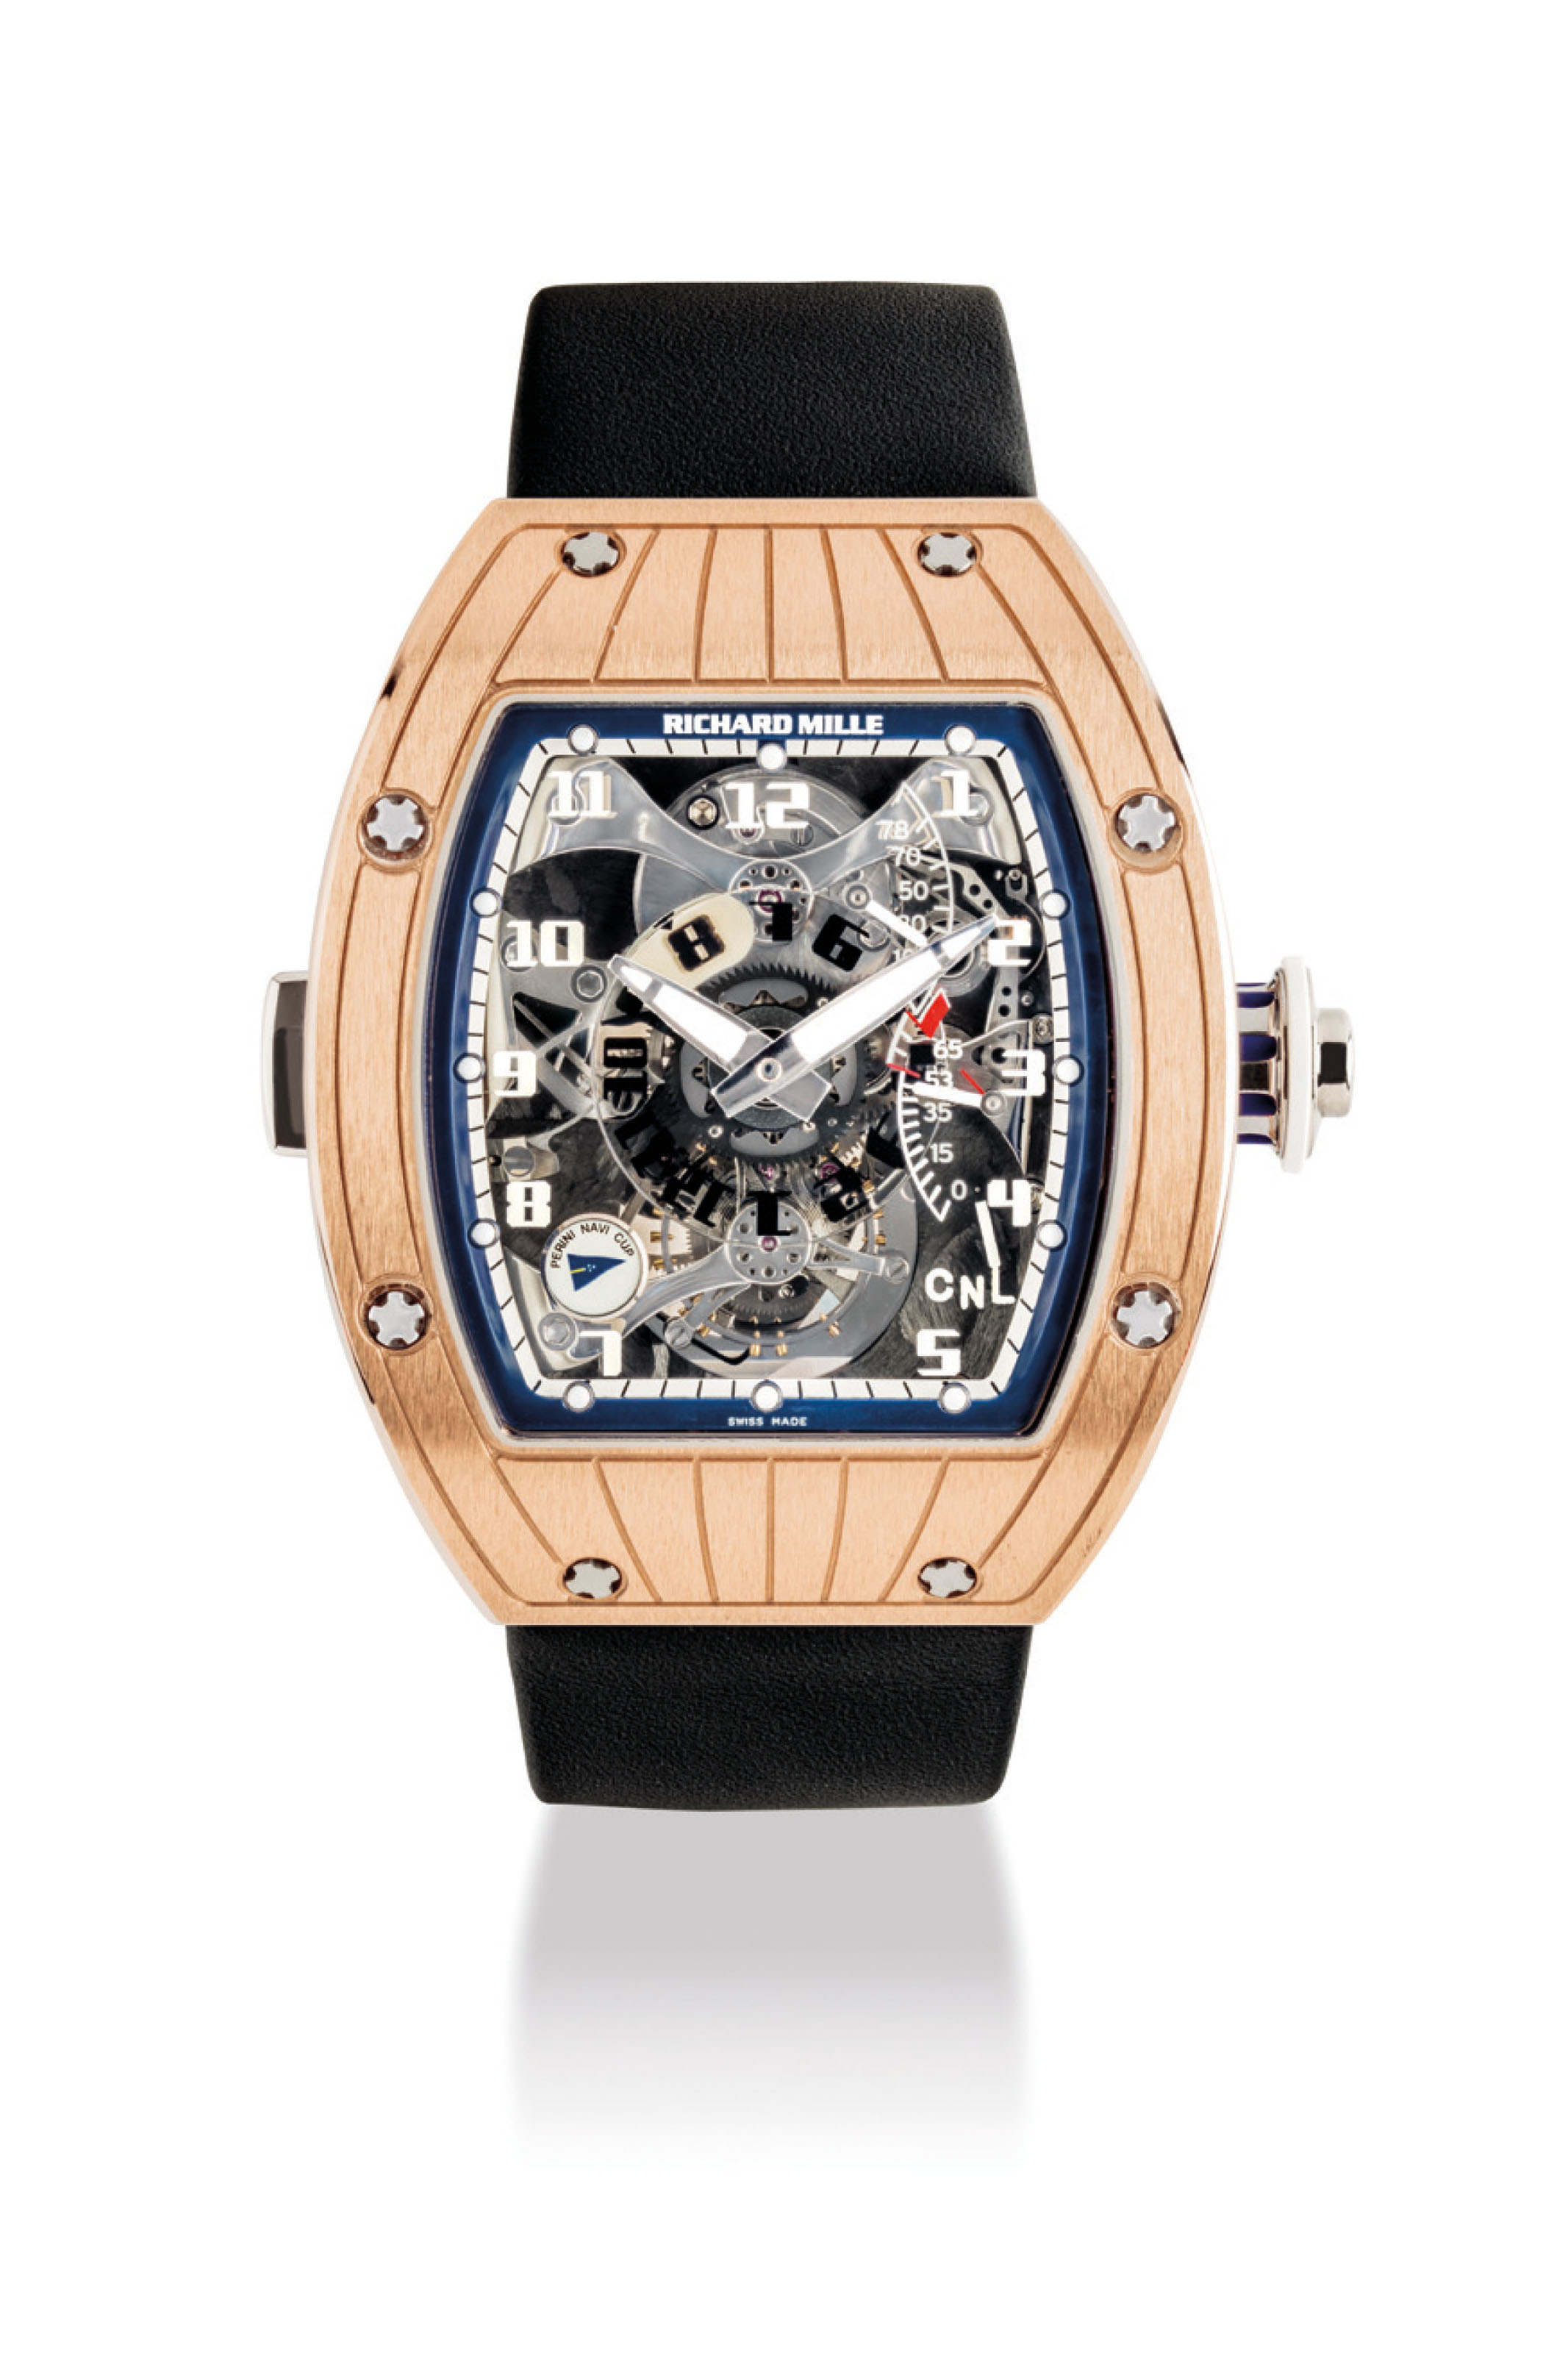 RICHARD MILLE. A FINE AND VERY RARE 18K PINK GOLD DUAL TIME TOURBILLON WRISTWATCH WITH POWER RESERVE